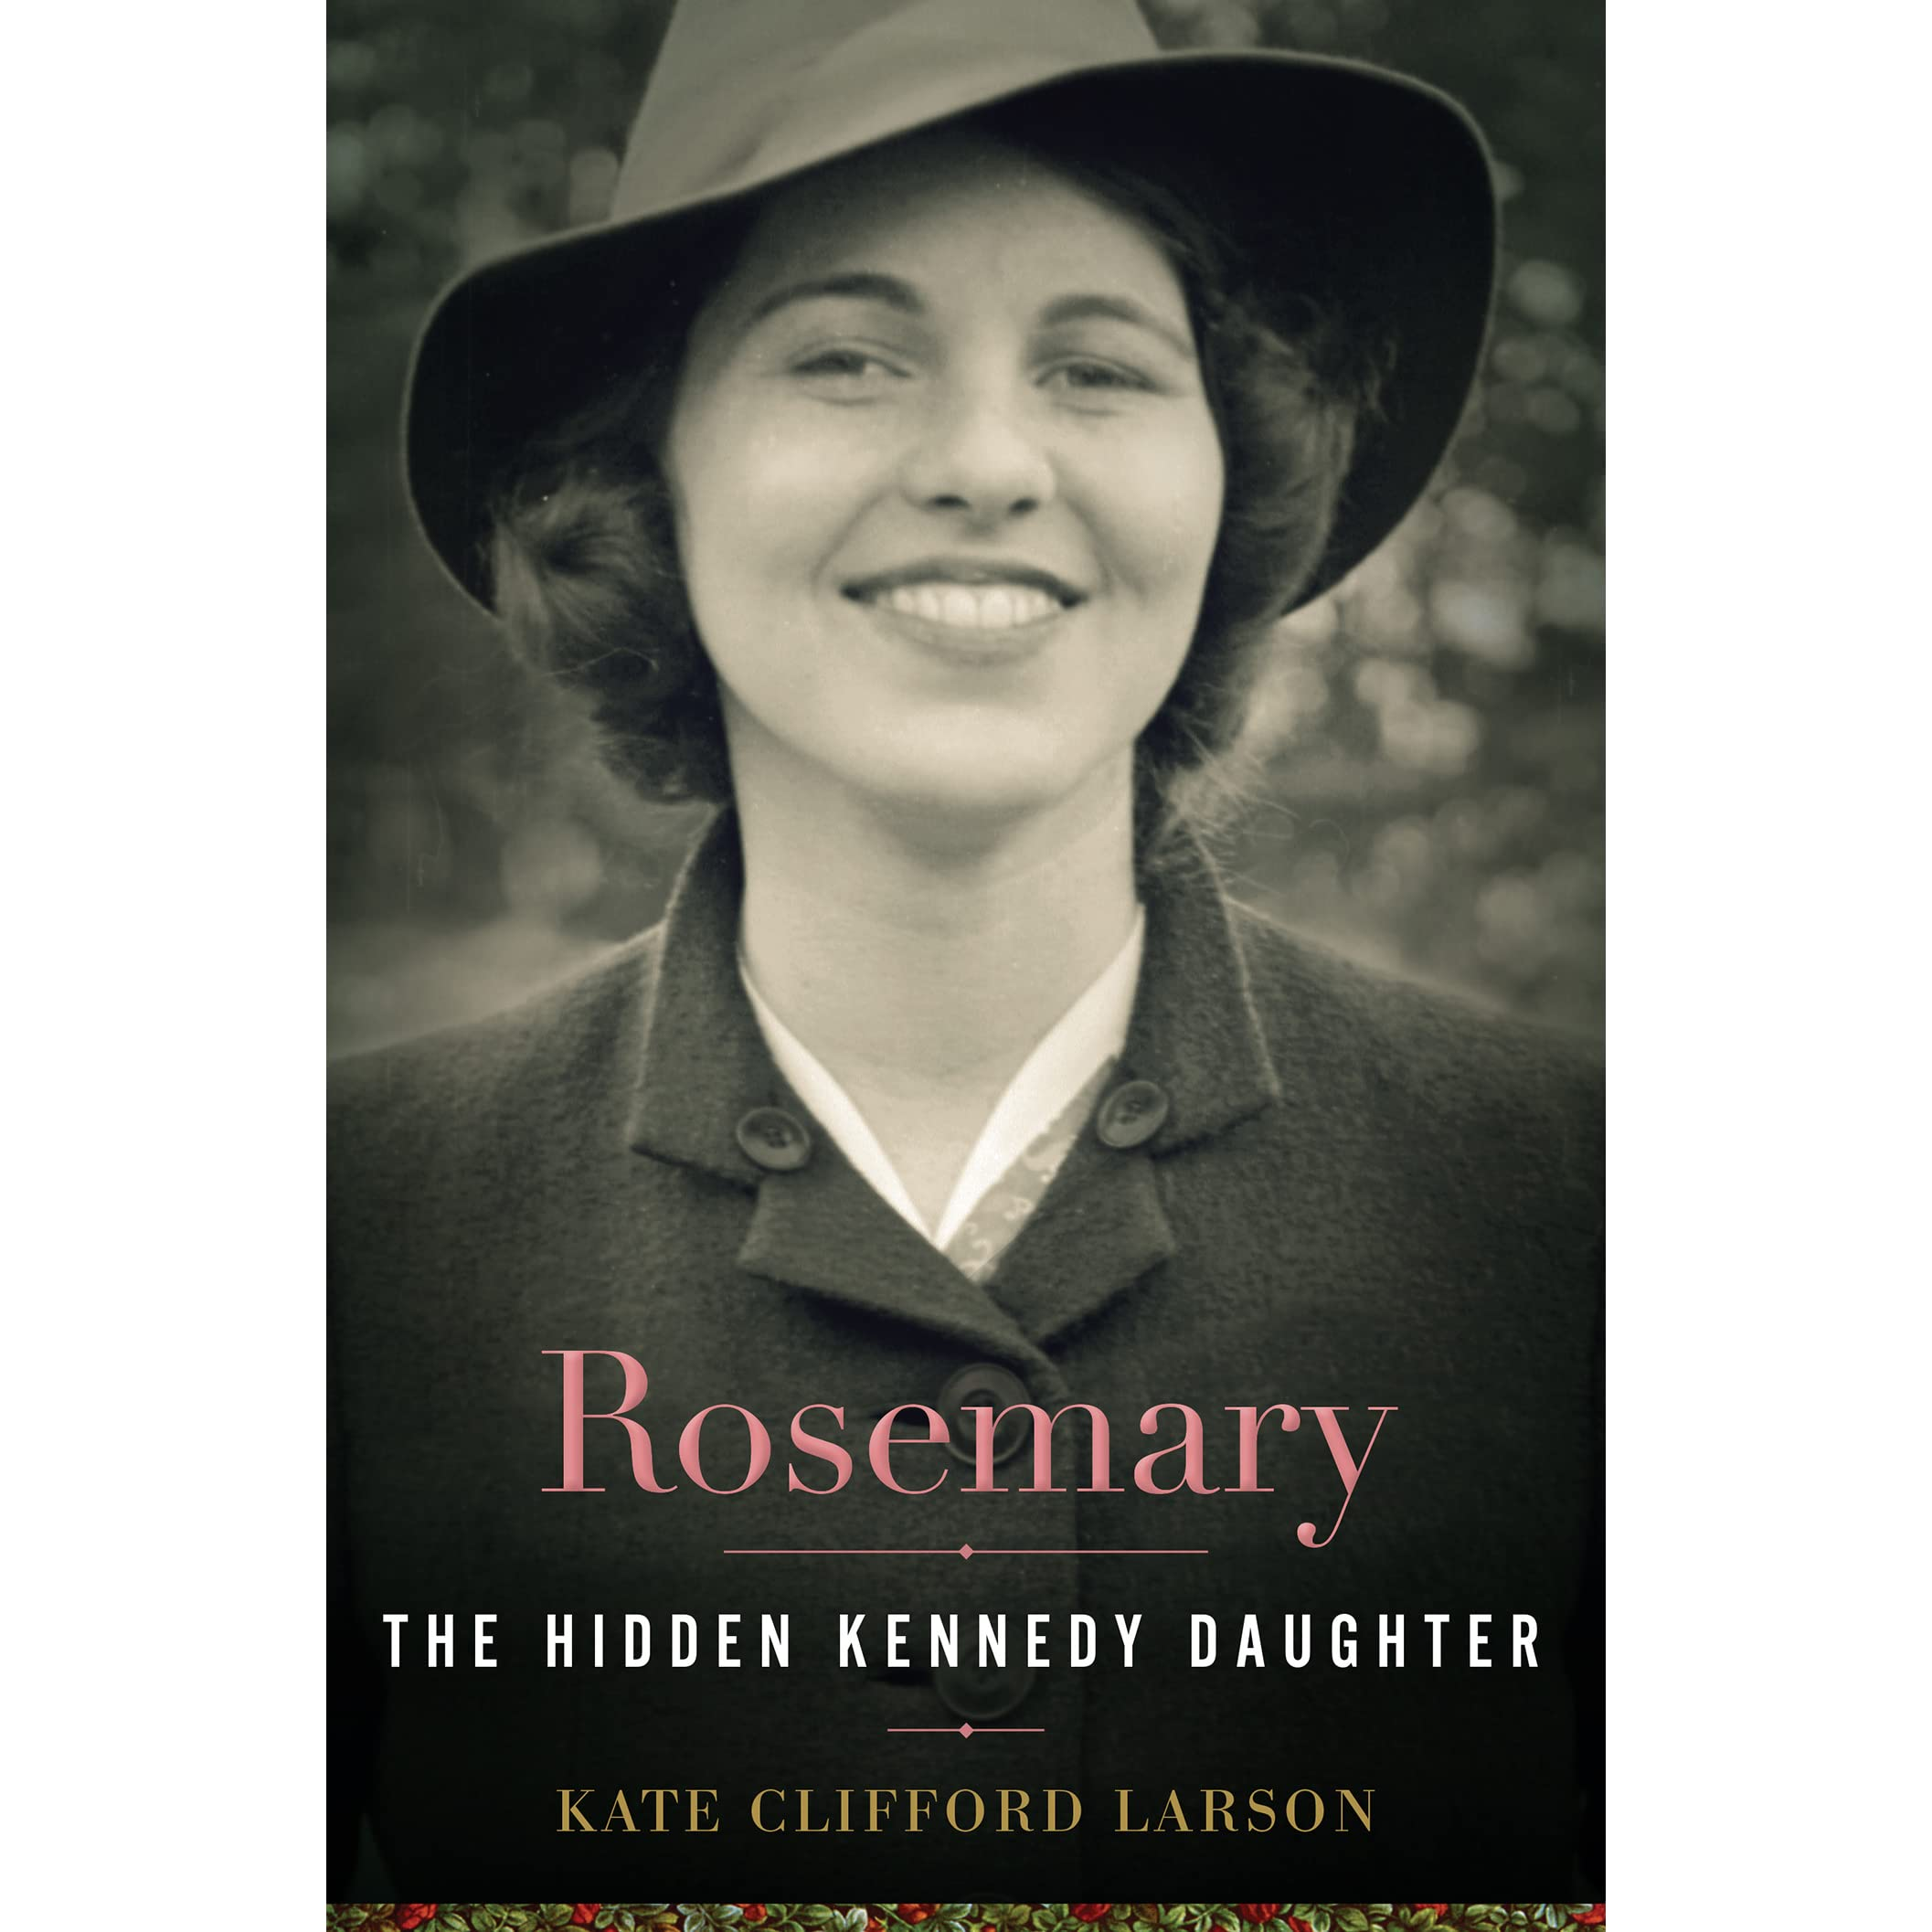 Rosemary The Hidden Kennedy Daughter By Kate Clifford Larson